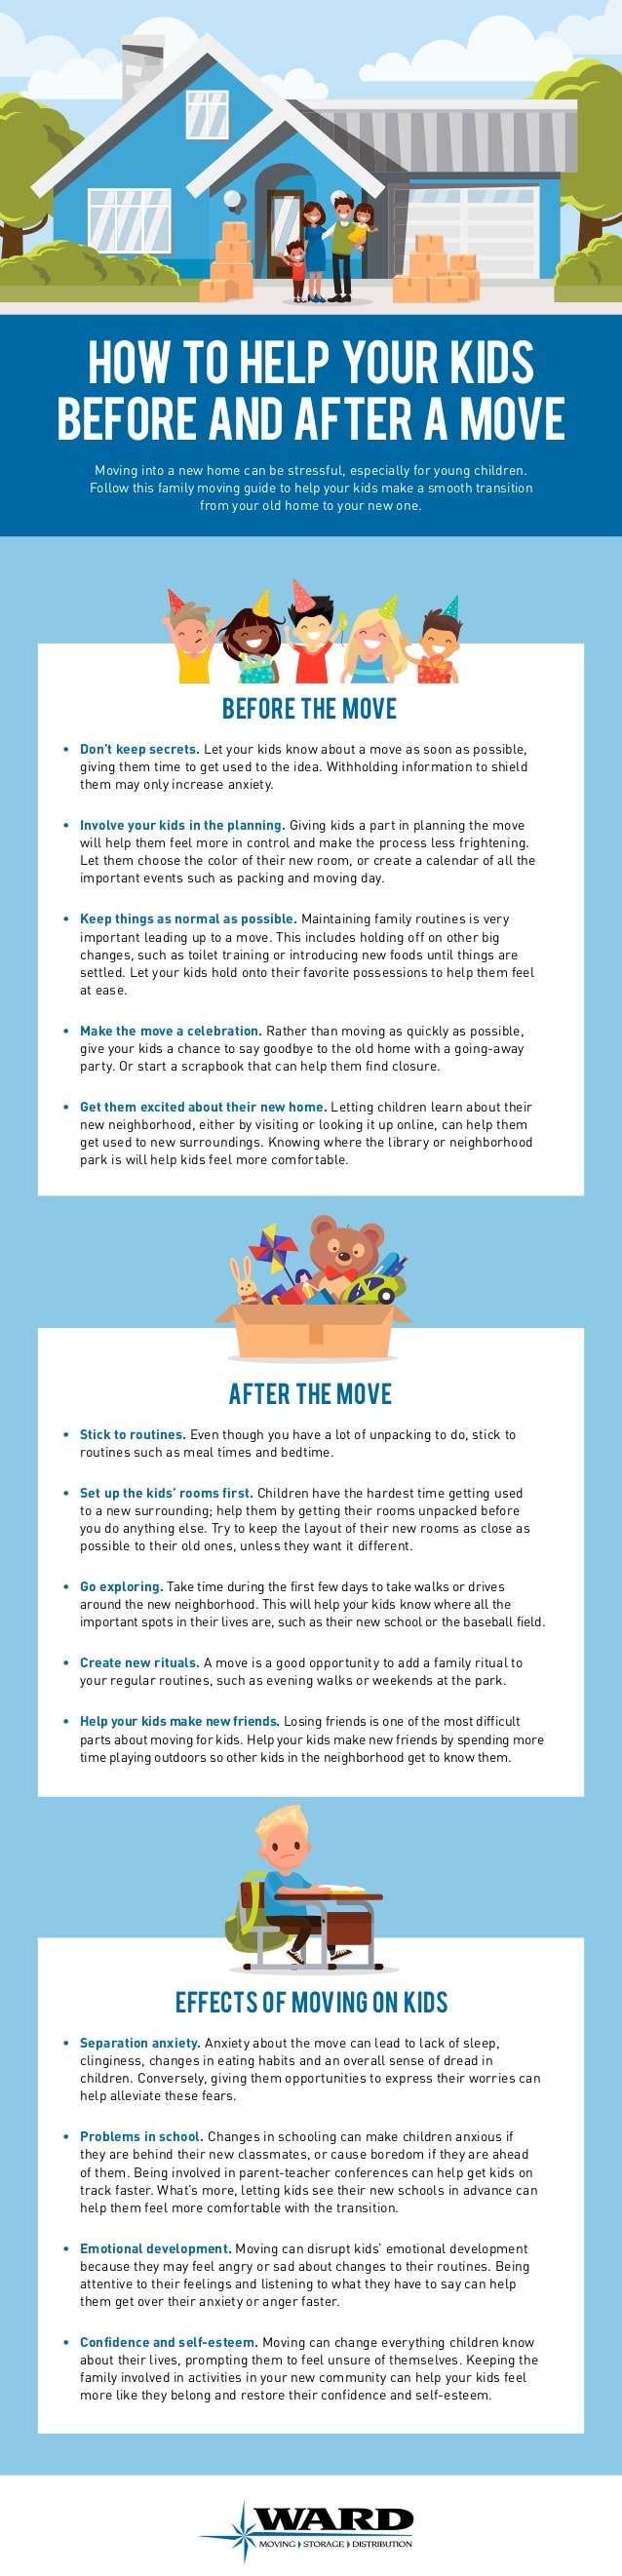 When you're moving with children, here are simple tips to help you prepare them for the change before you relocate, as well as how to help them settle into their new home, school and life.